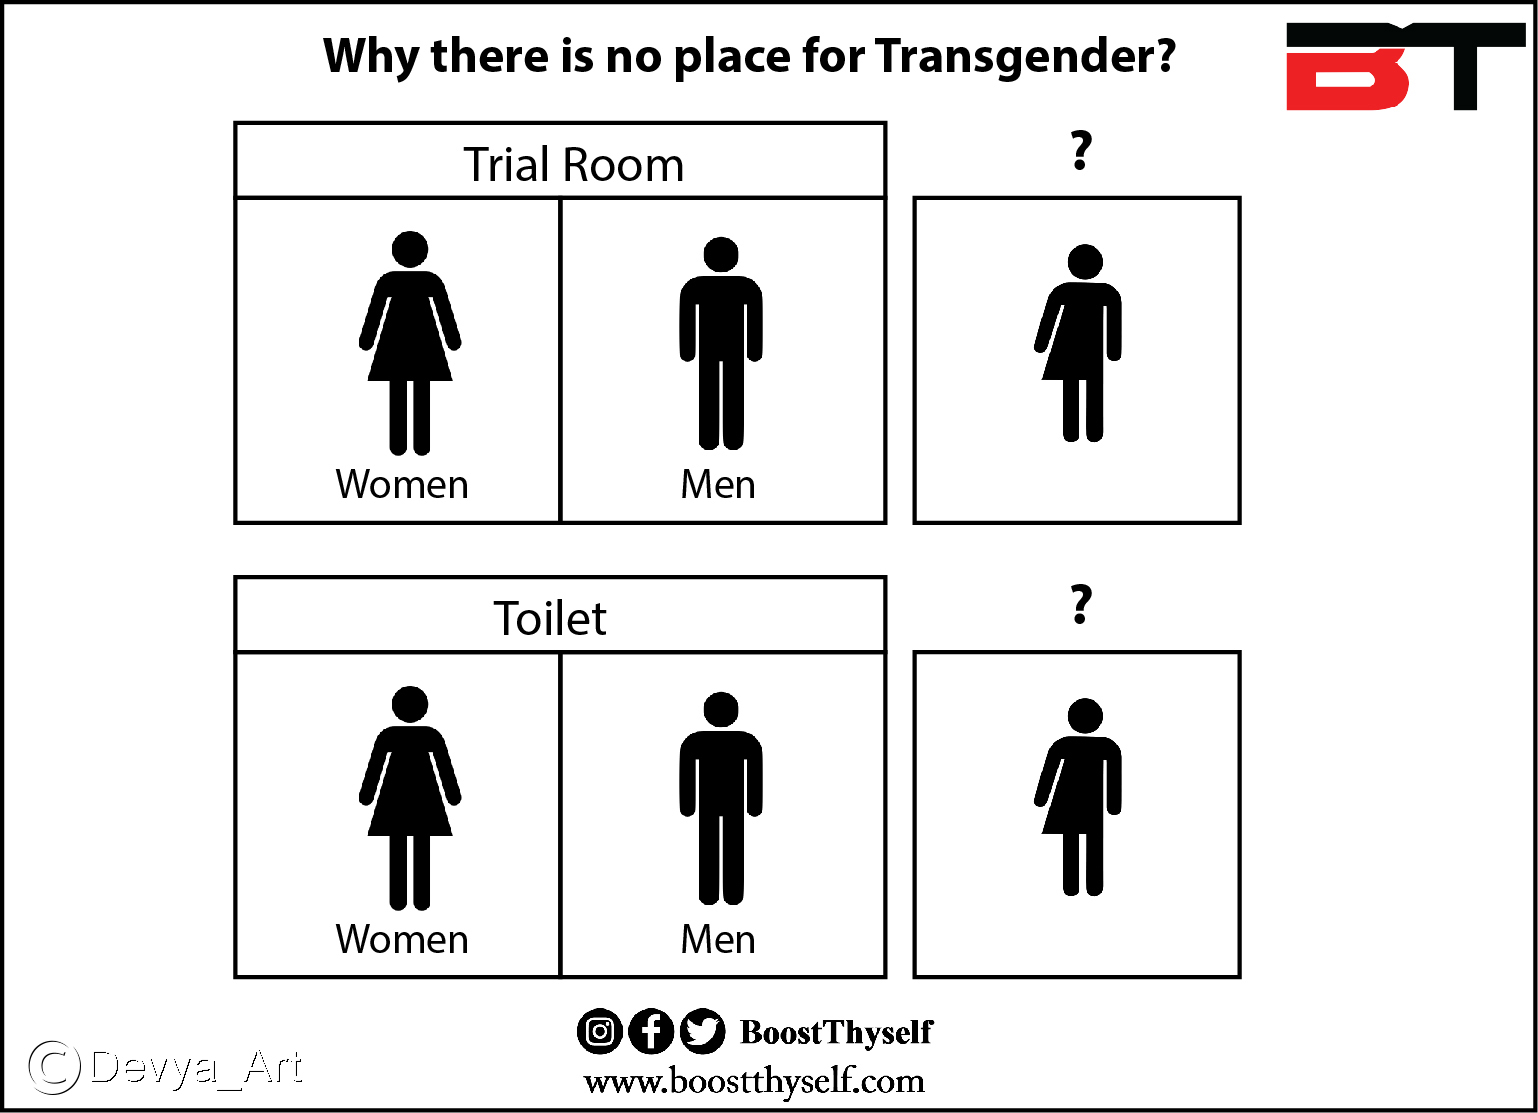 Transgenders are equally human